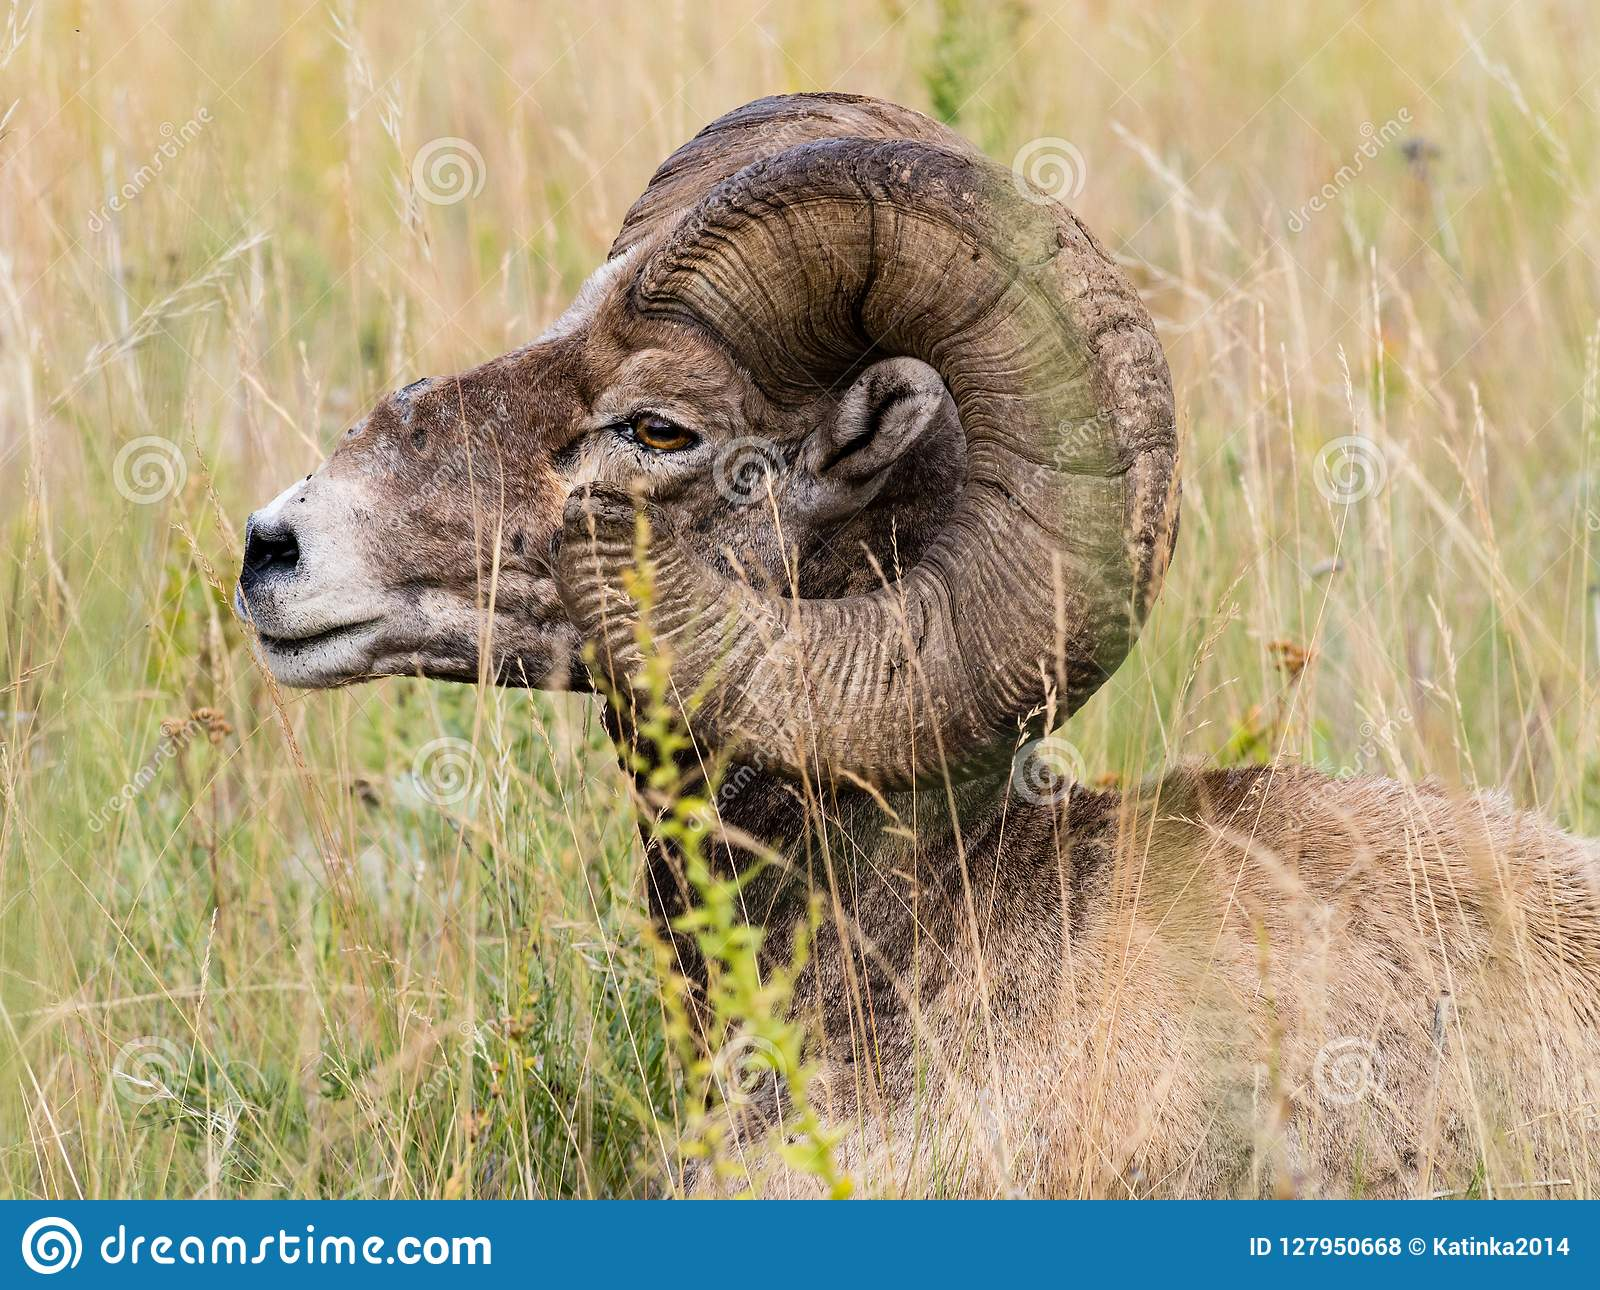 American bighorn sheep sitting in the grass